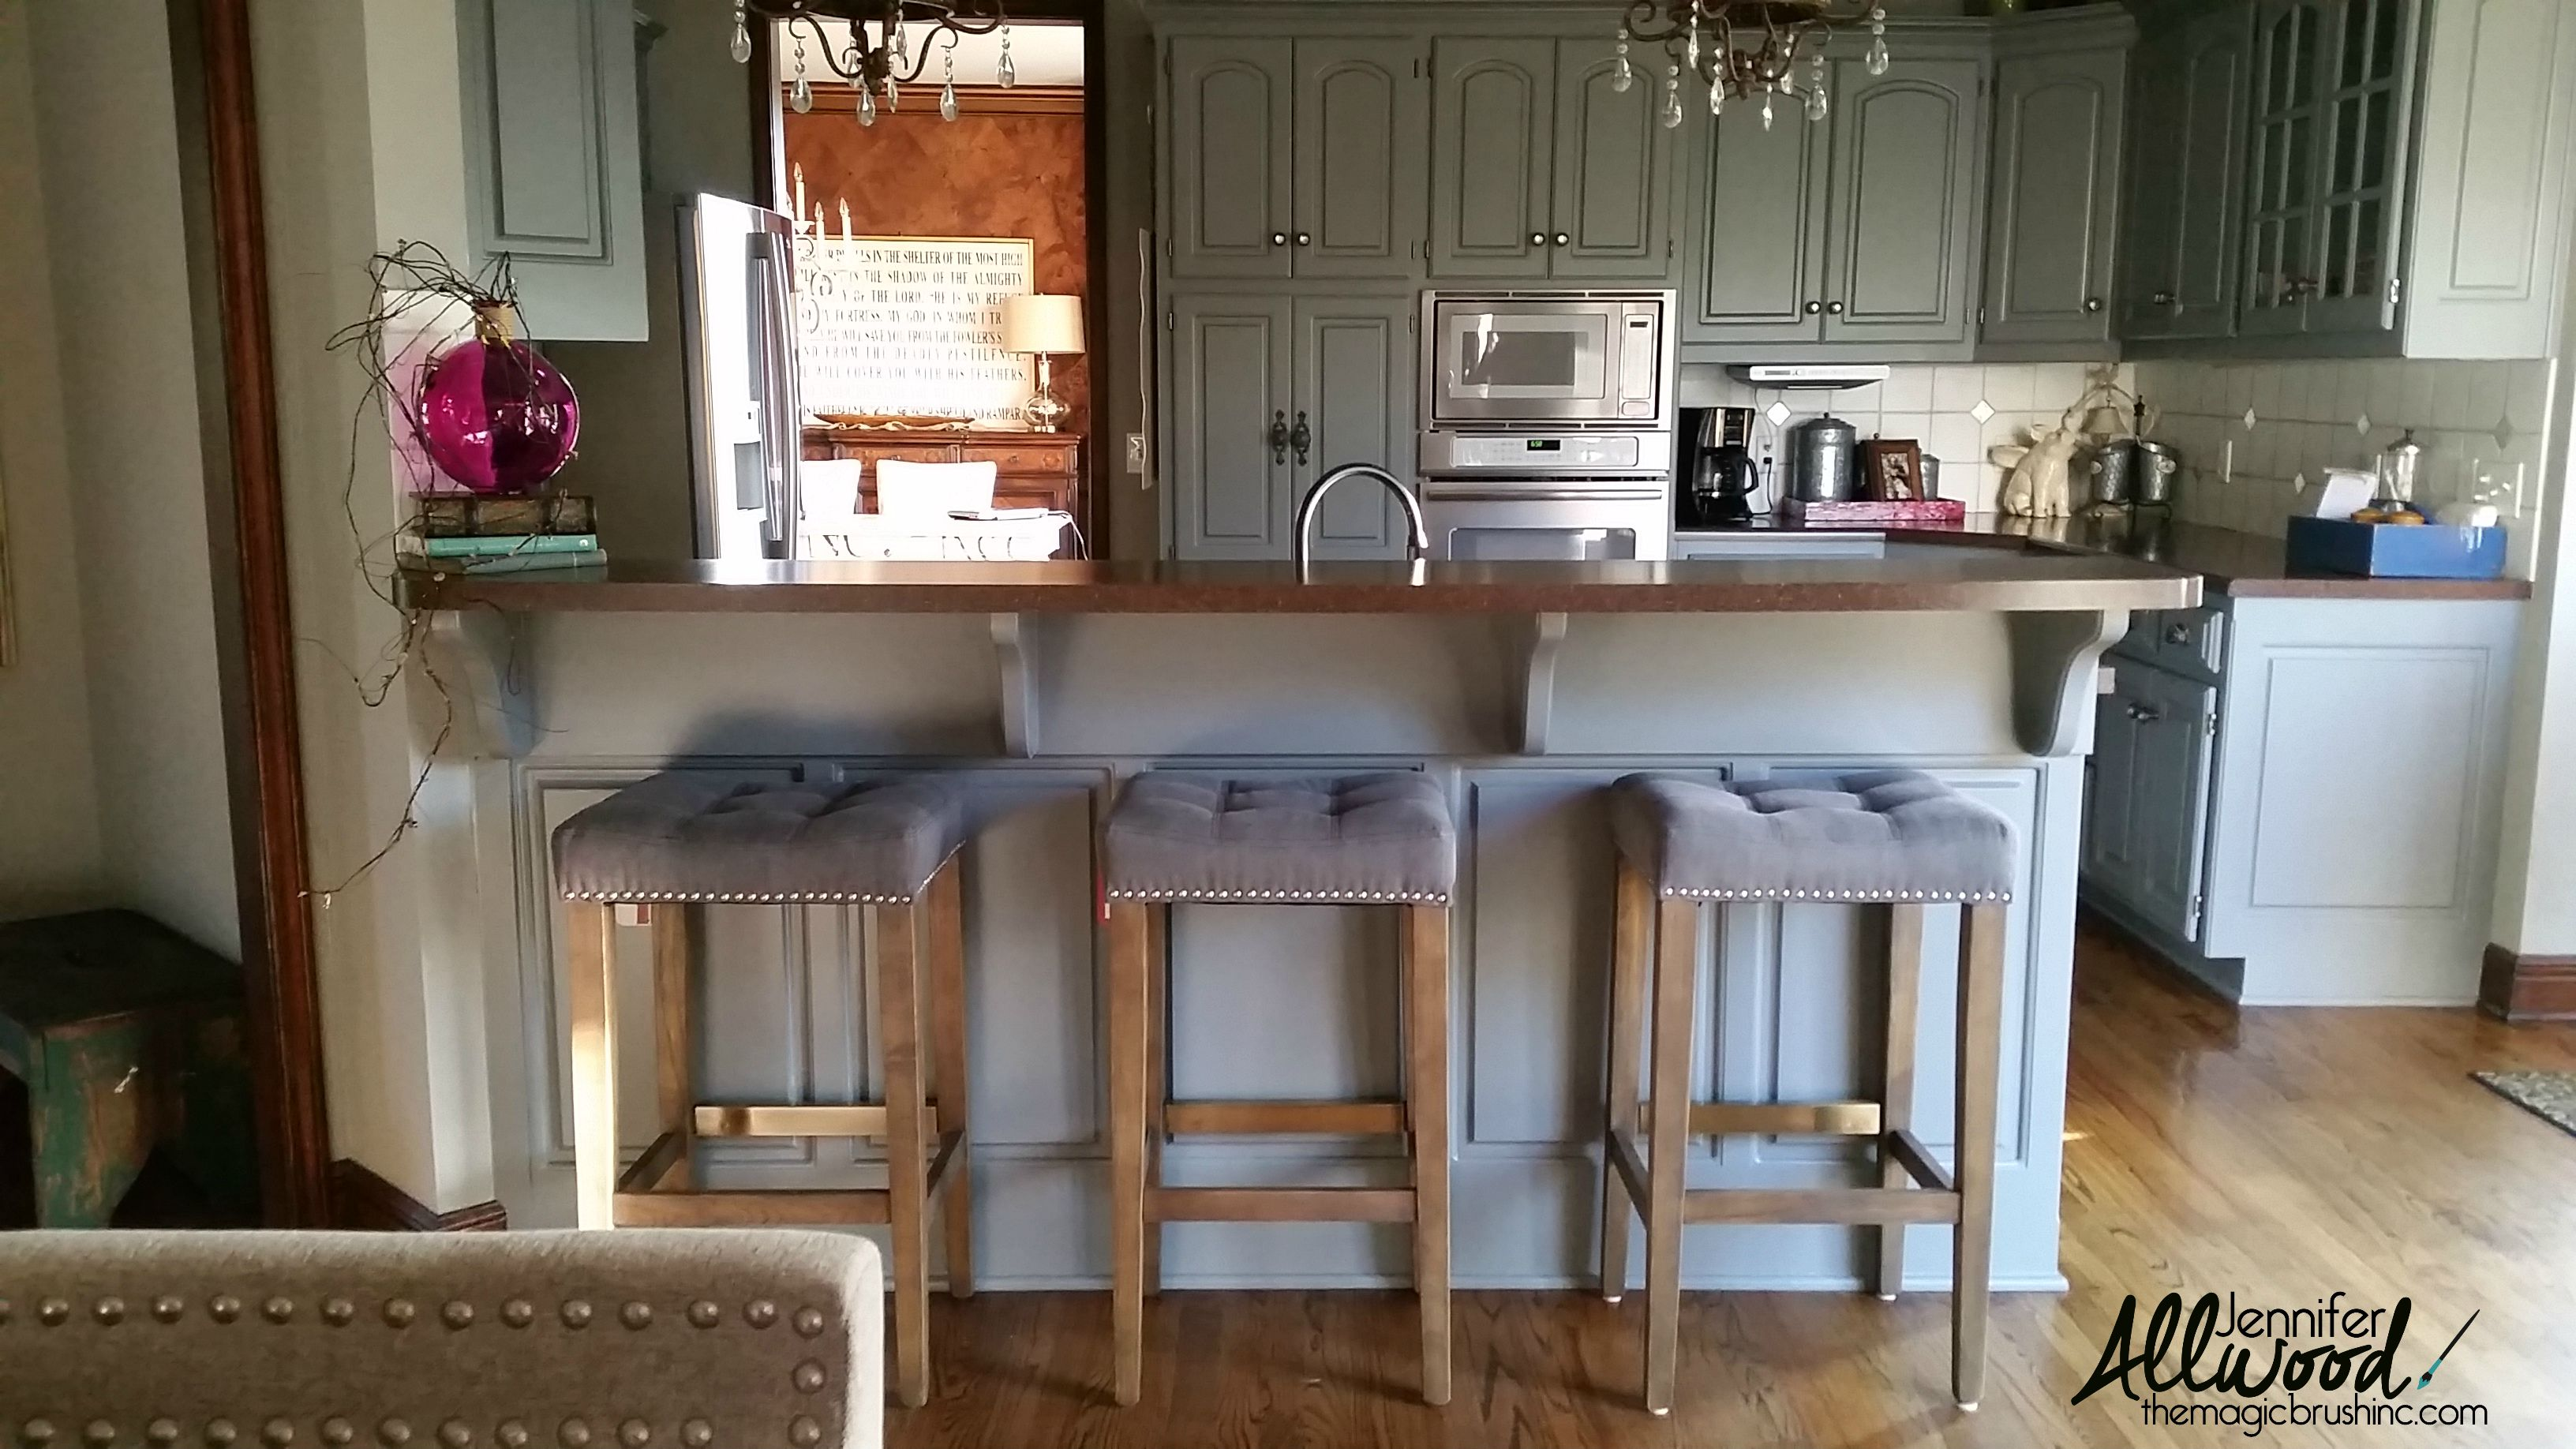 Our kitchen gray cabinets transformation: from gold —–> gray